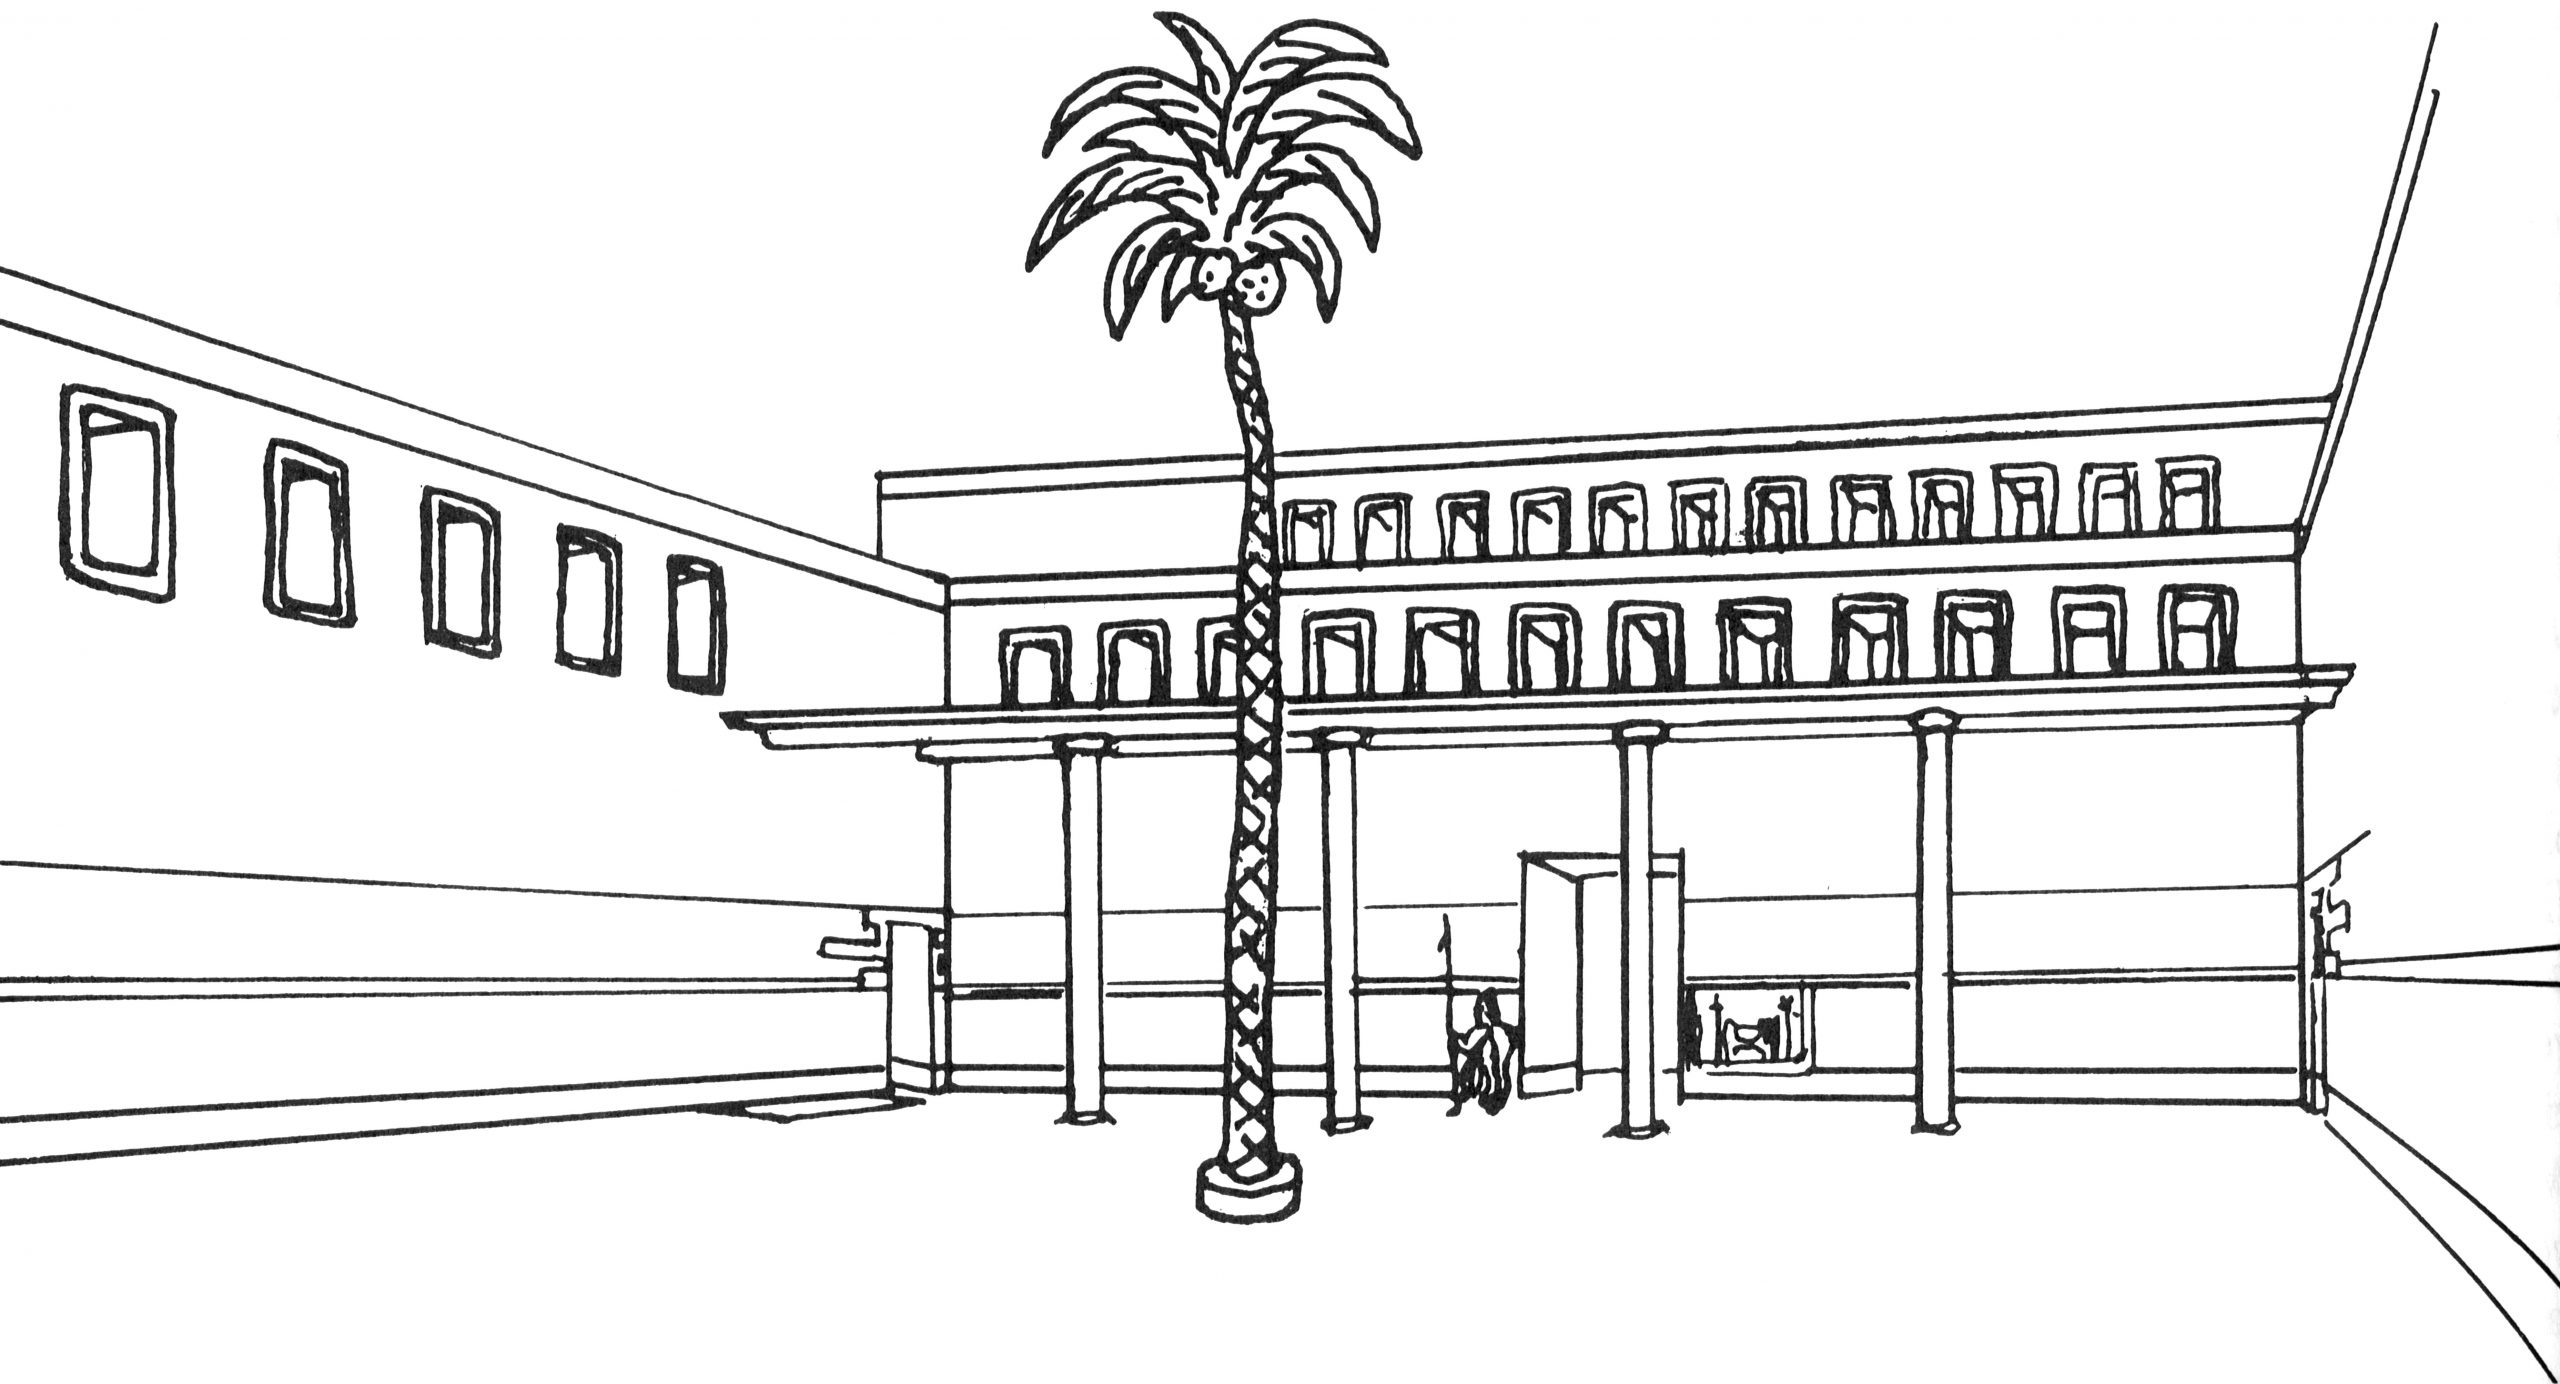 Margueron's reconstruction of the Court of the Palm with an artificial tree